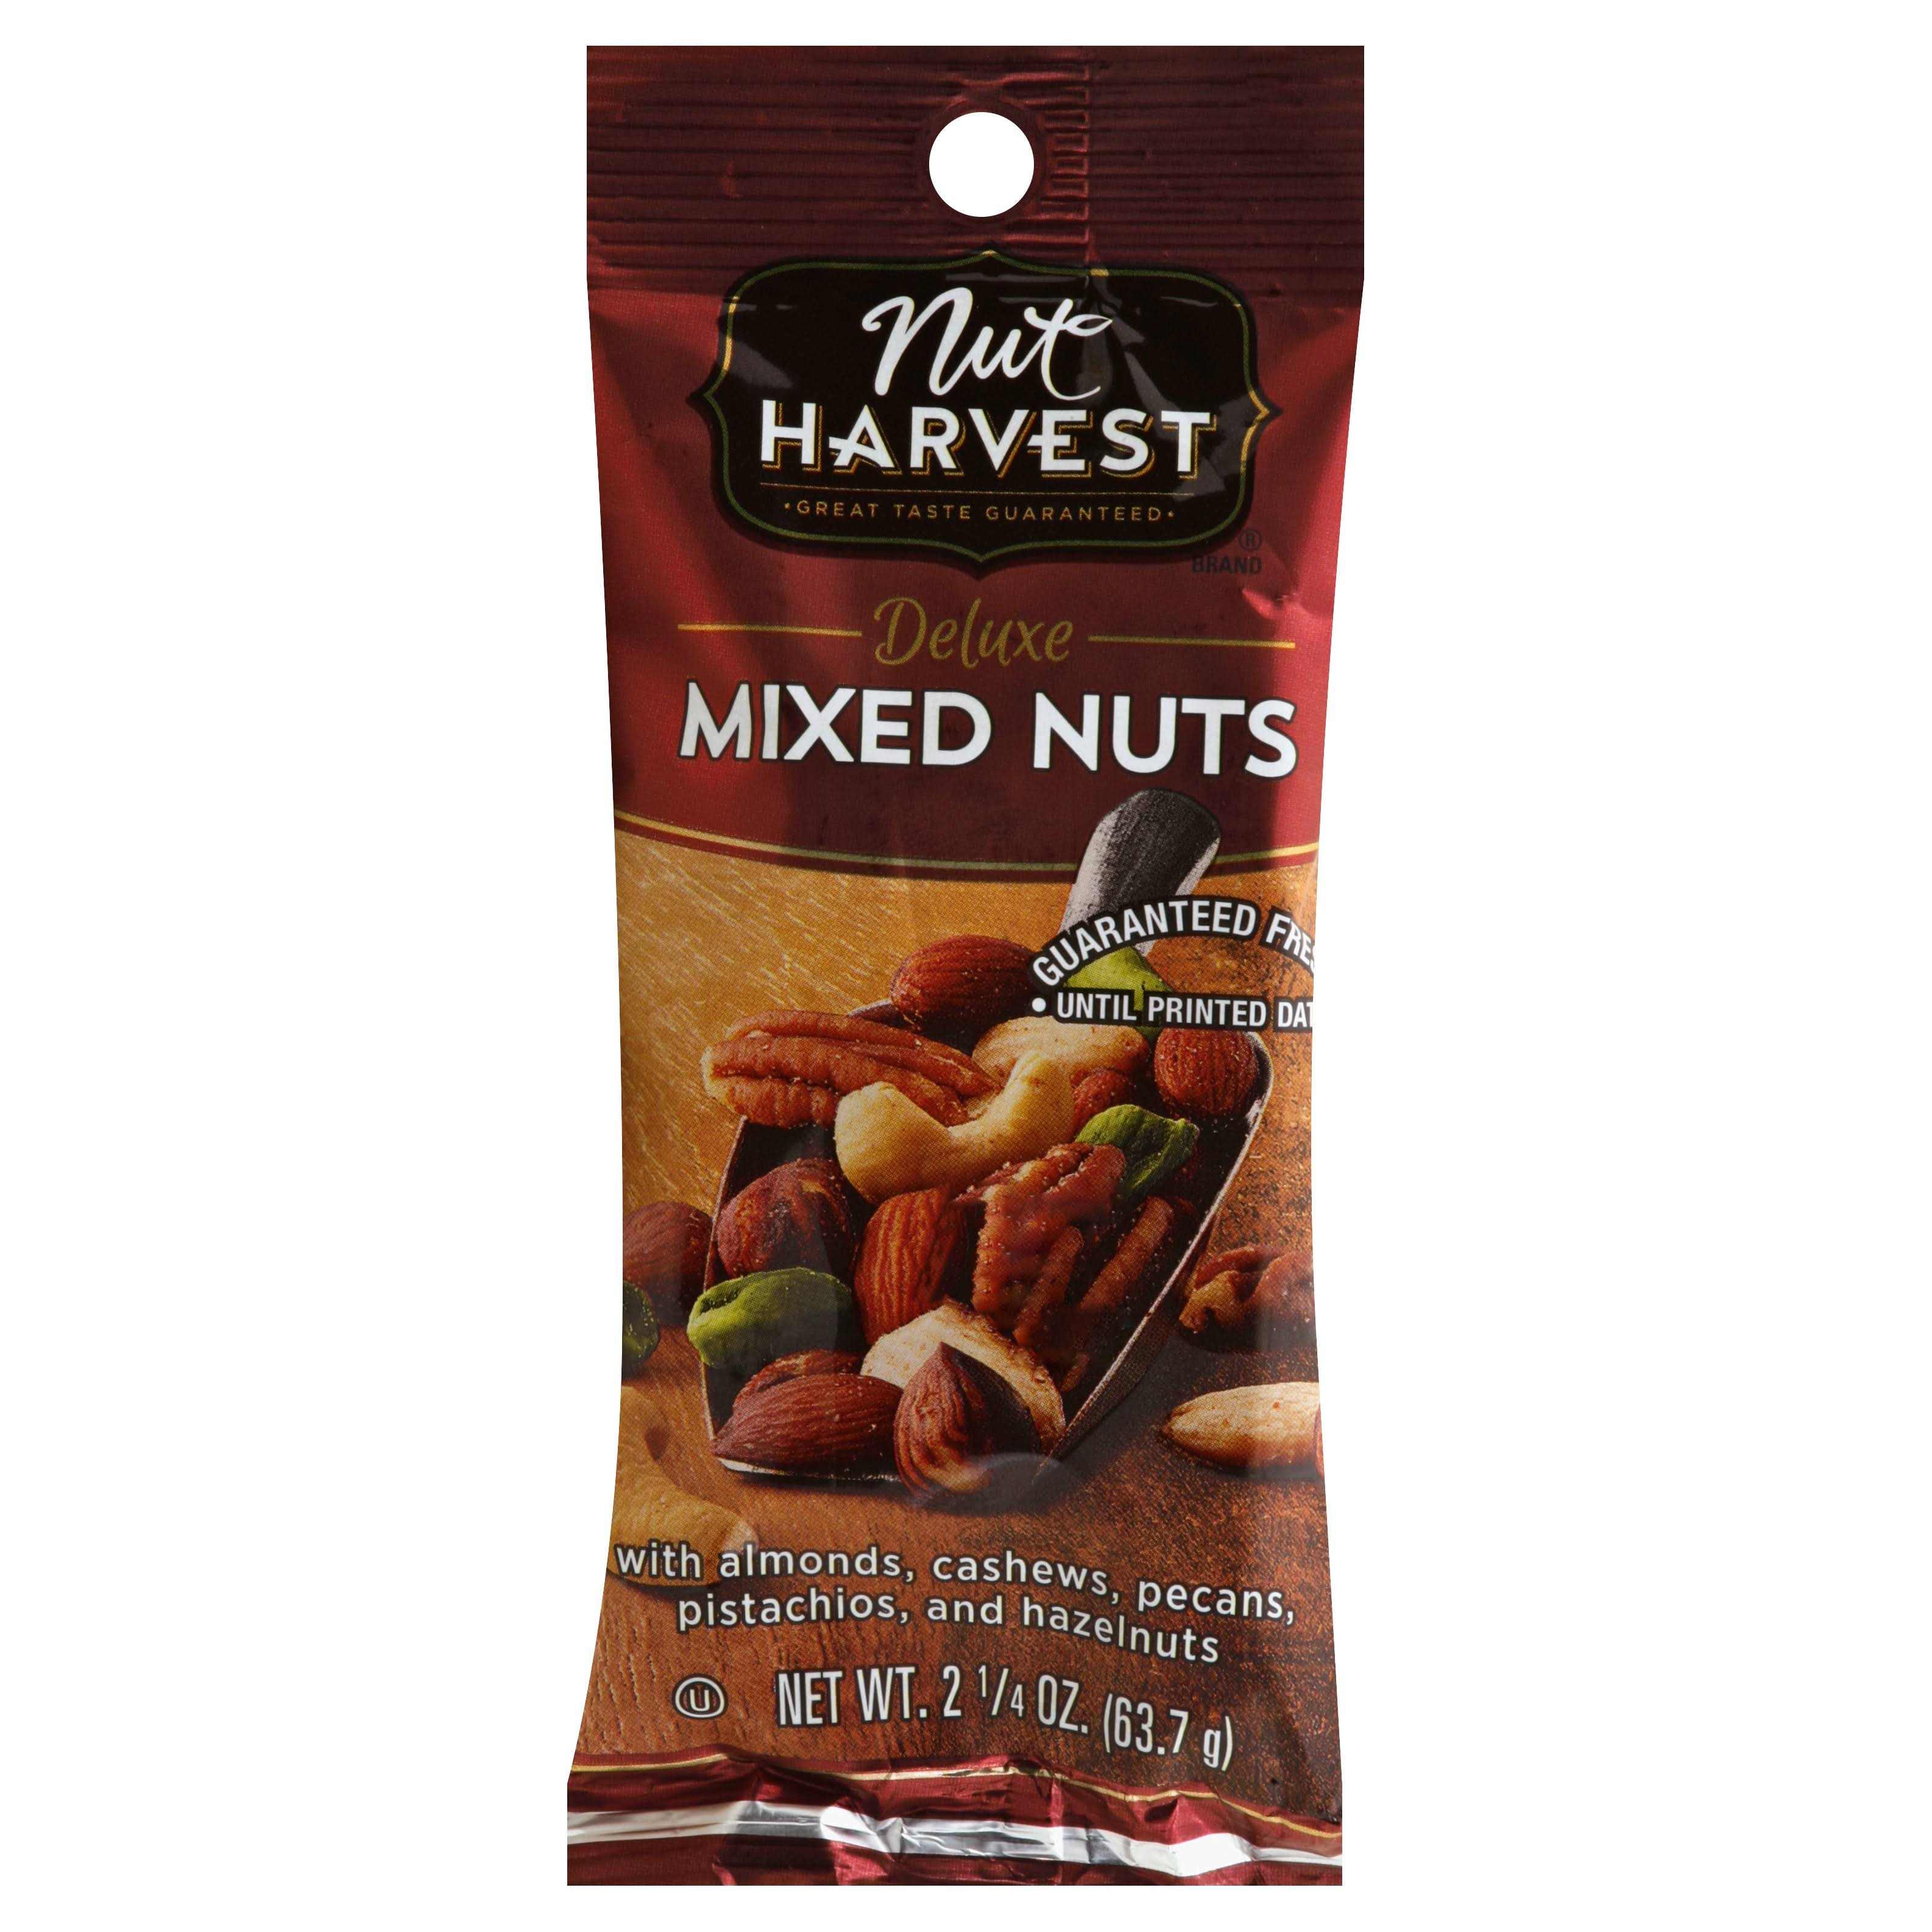 Nut Harvest Mixed Nuts, Deluxe - 2.25 oz